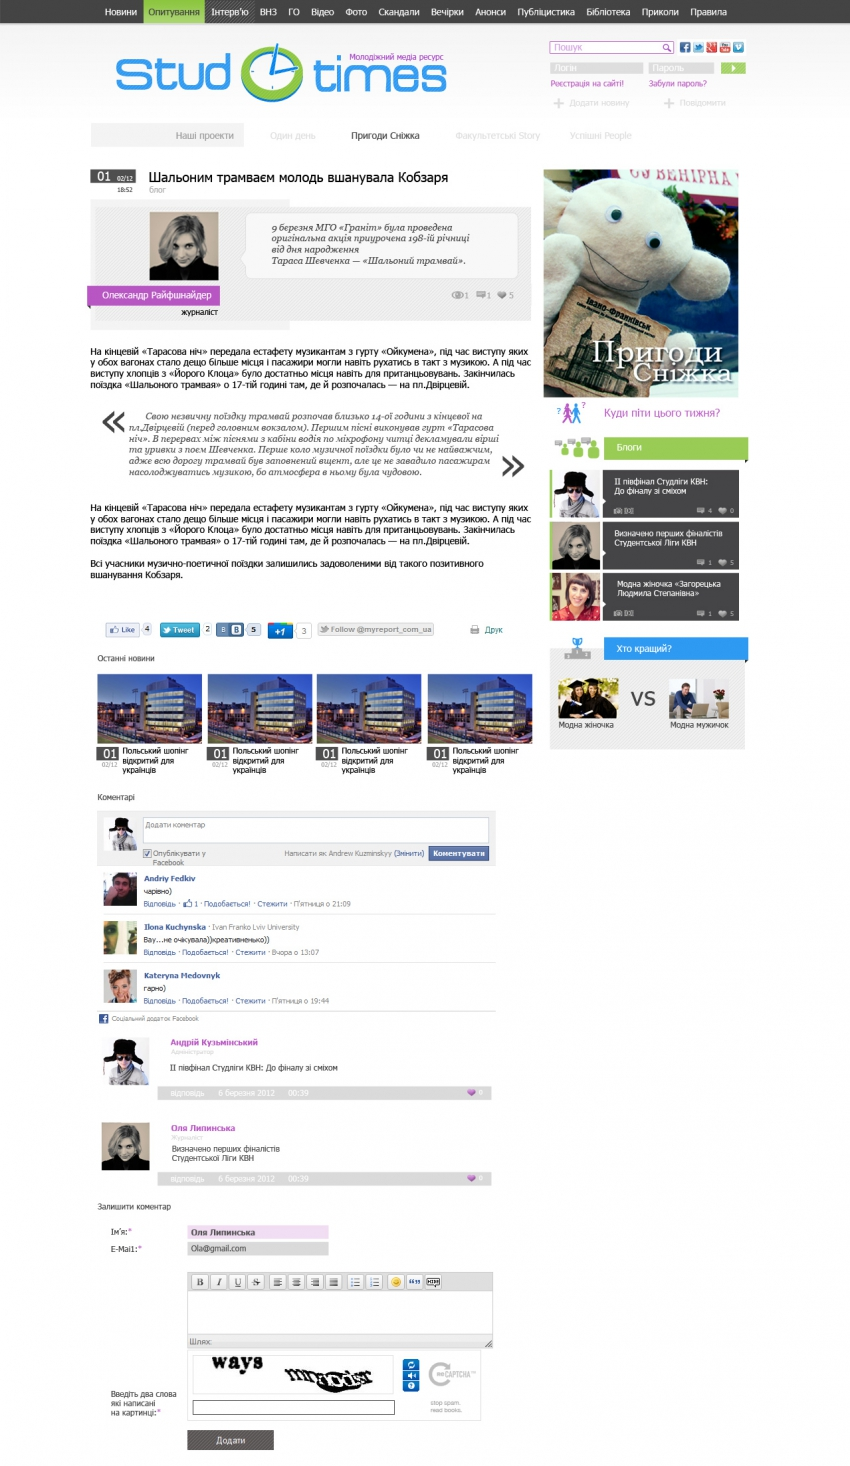 Creating online news portal